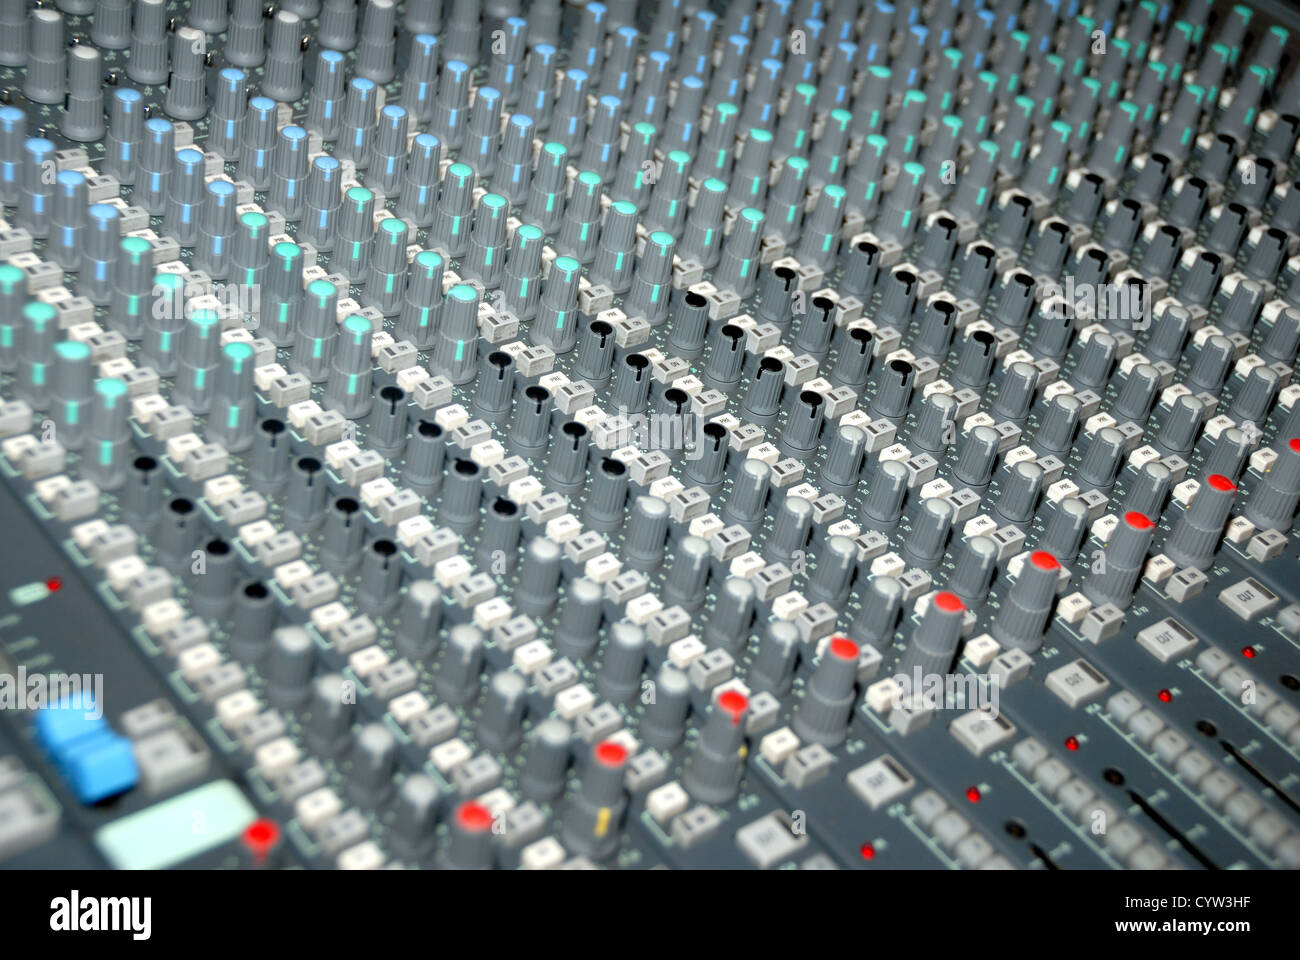 Audio mixing console in a recording studio. Faders and knobs of a sound mixer. - Stock Image